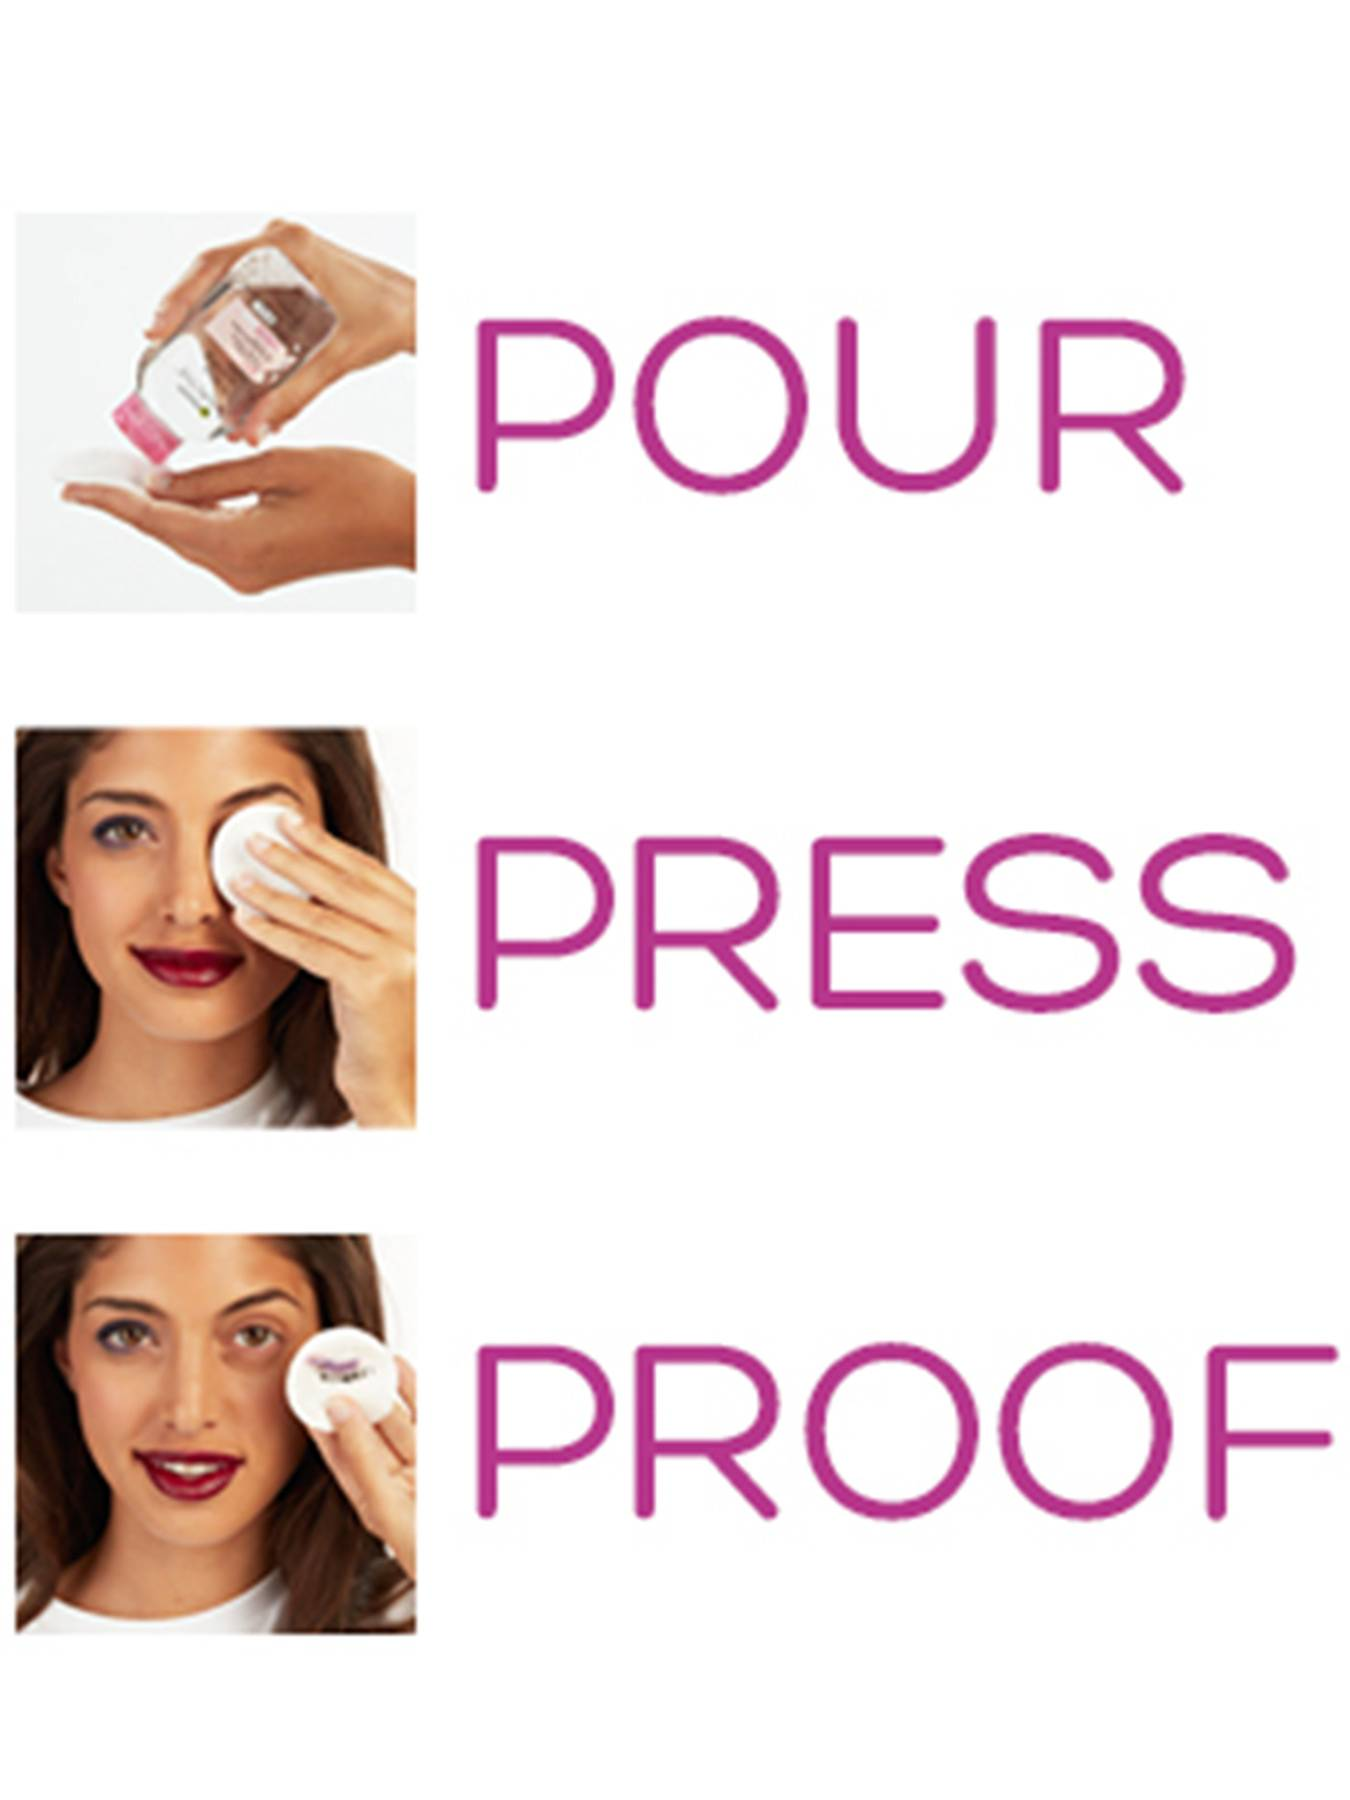 Triptych of one-word directions in pink and examples. Pour: Micellar Cleansing Water is dabbed on a makeup removal pad. Press: the pad is applied to the eye of a woman with heavy makeup. Proof: The pad is held up before the woman with the makeup removed from her eye and deposited on the pad.